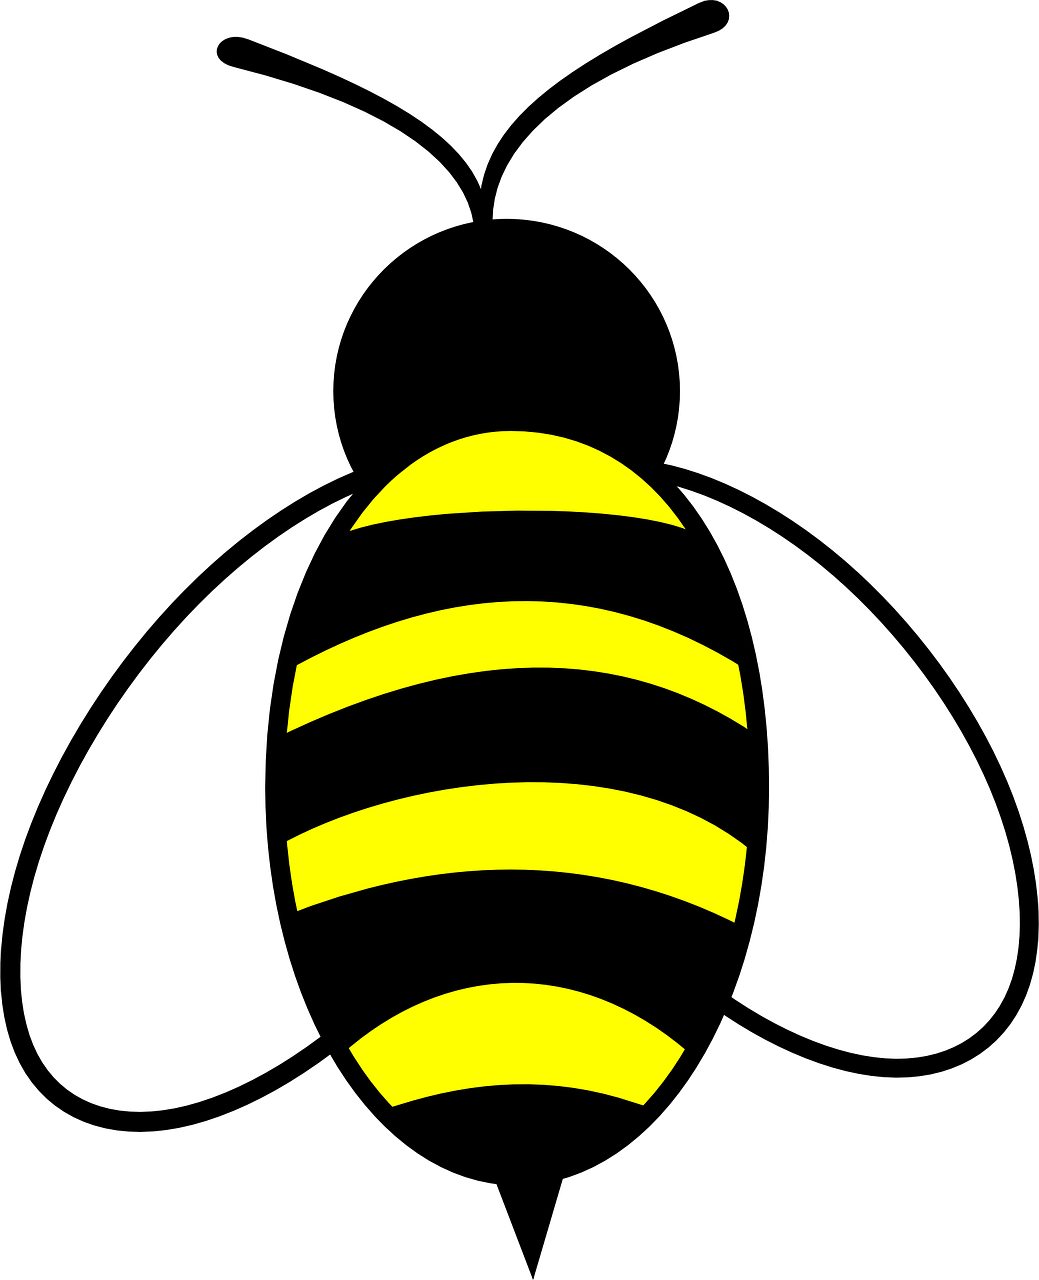 Honey bee insect buzz. Insects clipart yellow bug